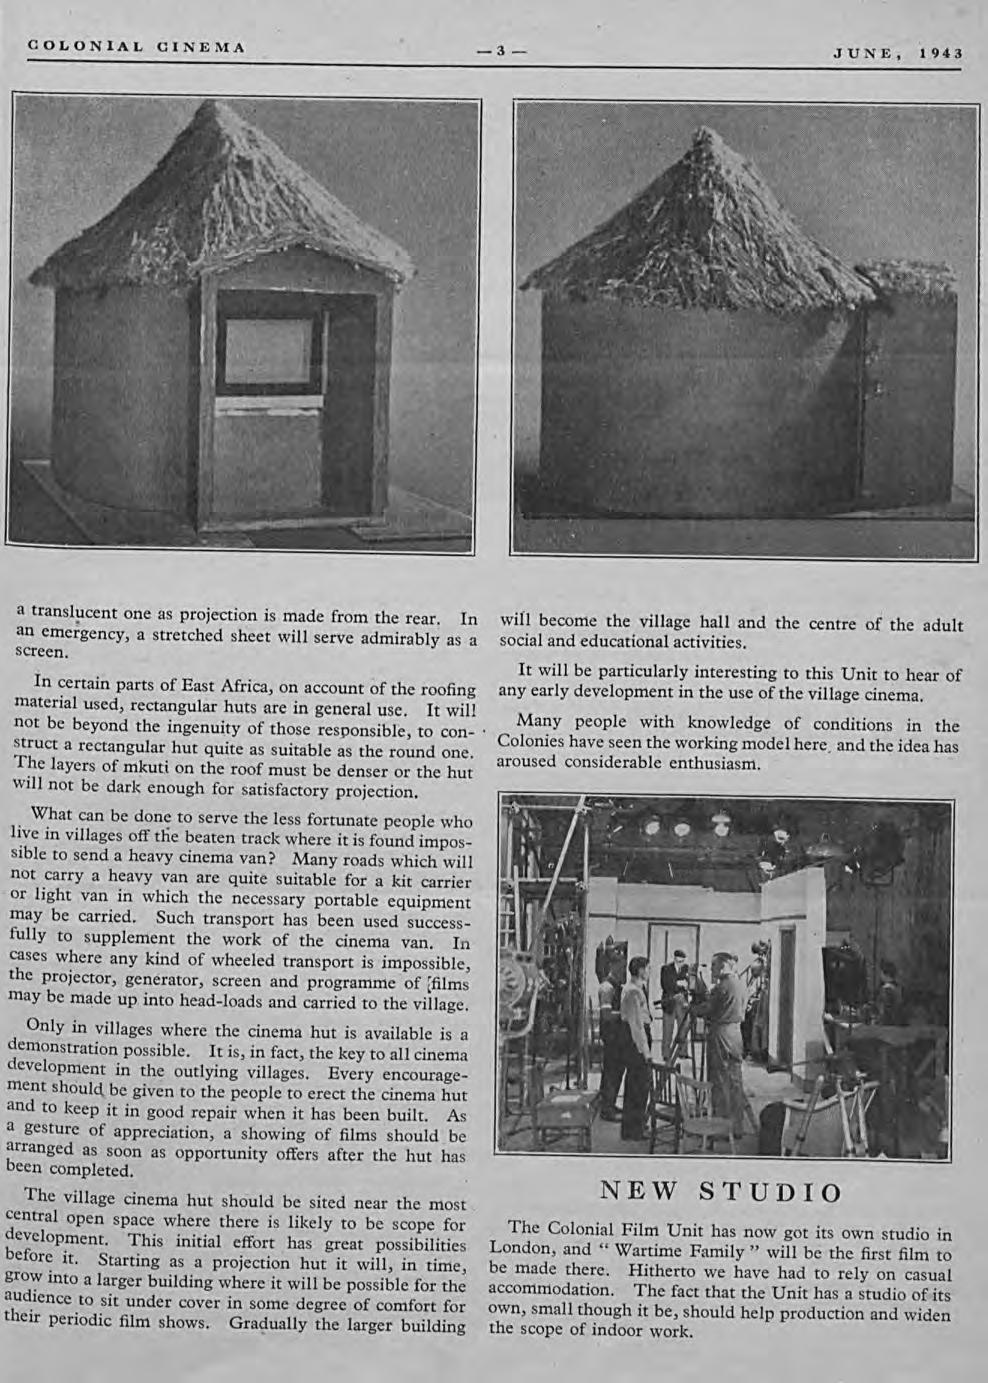 COLONIAL CINEMA -3- JUNE. 1943 a translucent' one as projection is made from the rear. In an eme;gency, a stretched sheet will serve admirably as a Screen.